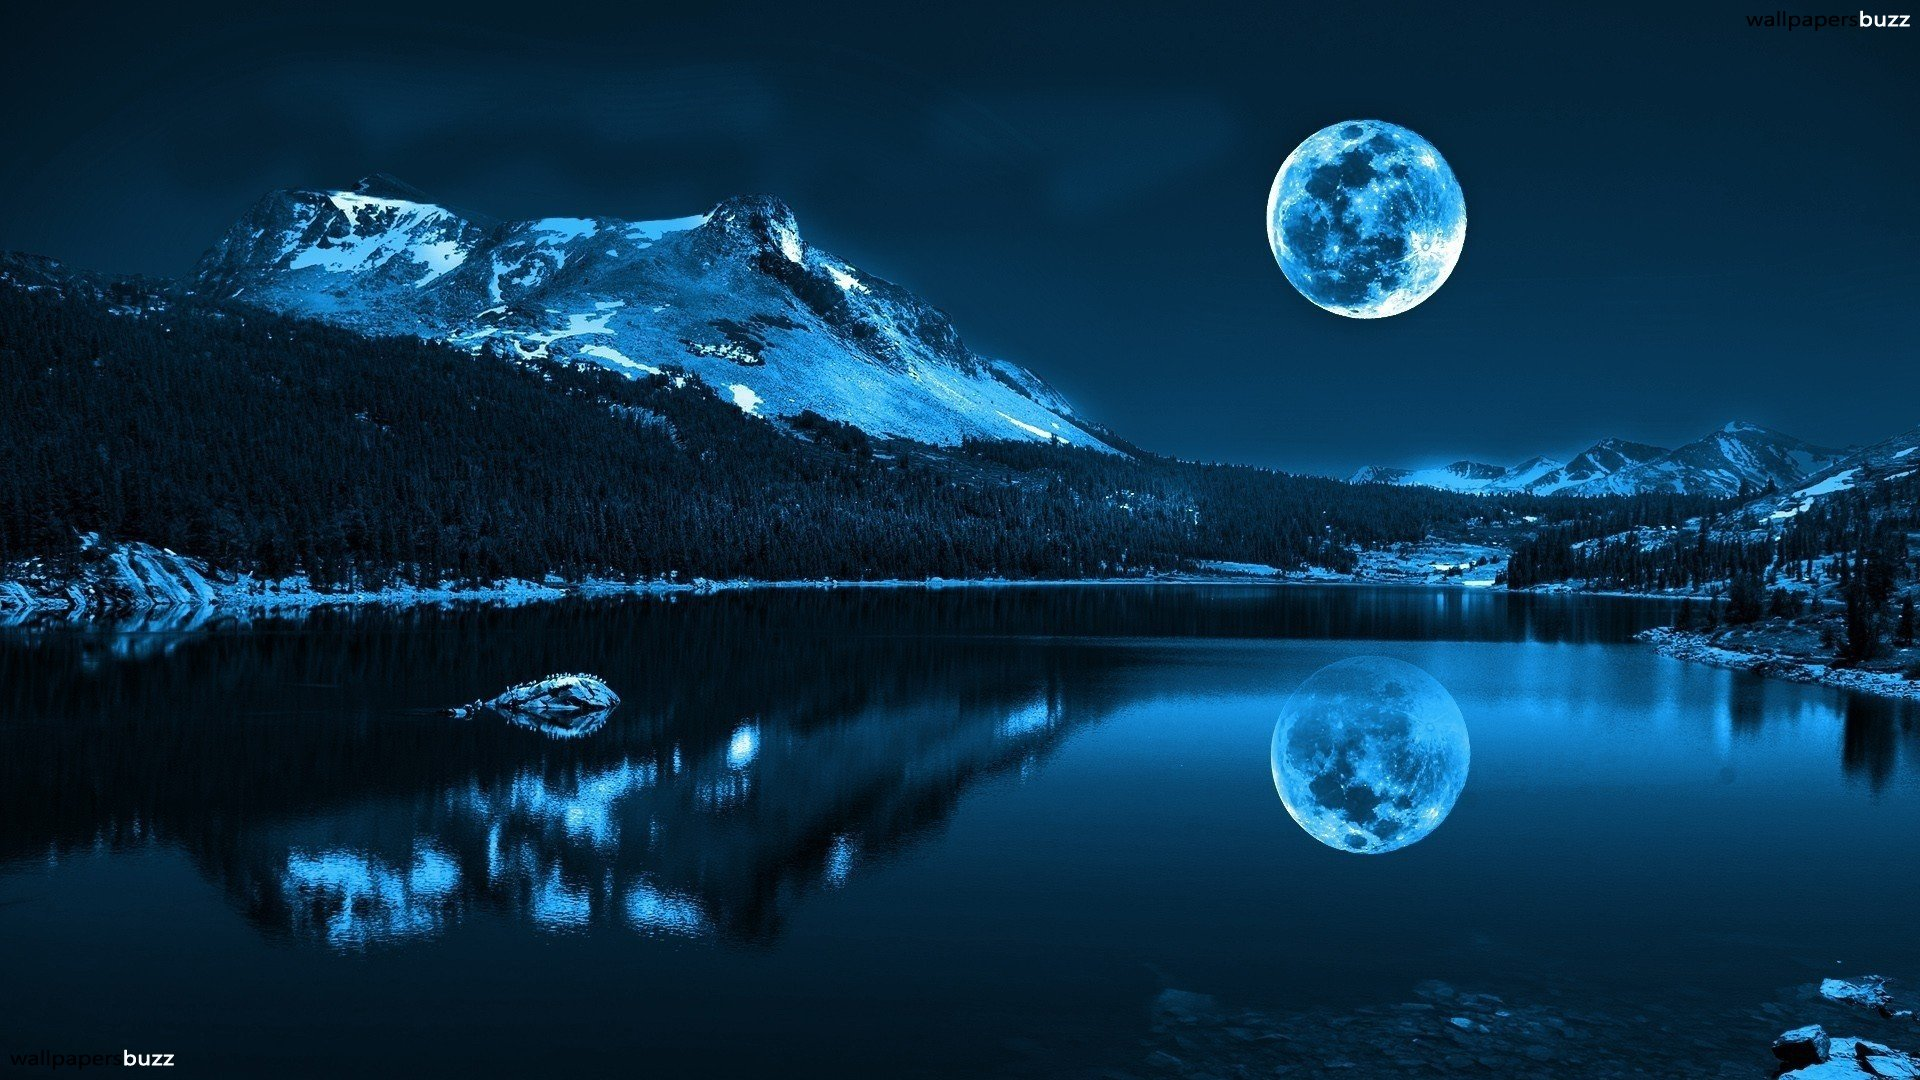 Beauty Night Landscape Wallpaper Full Widescreen #09143